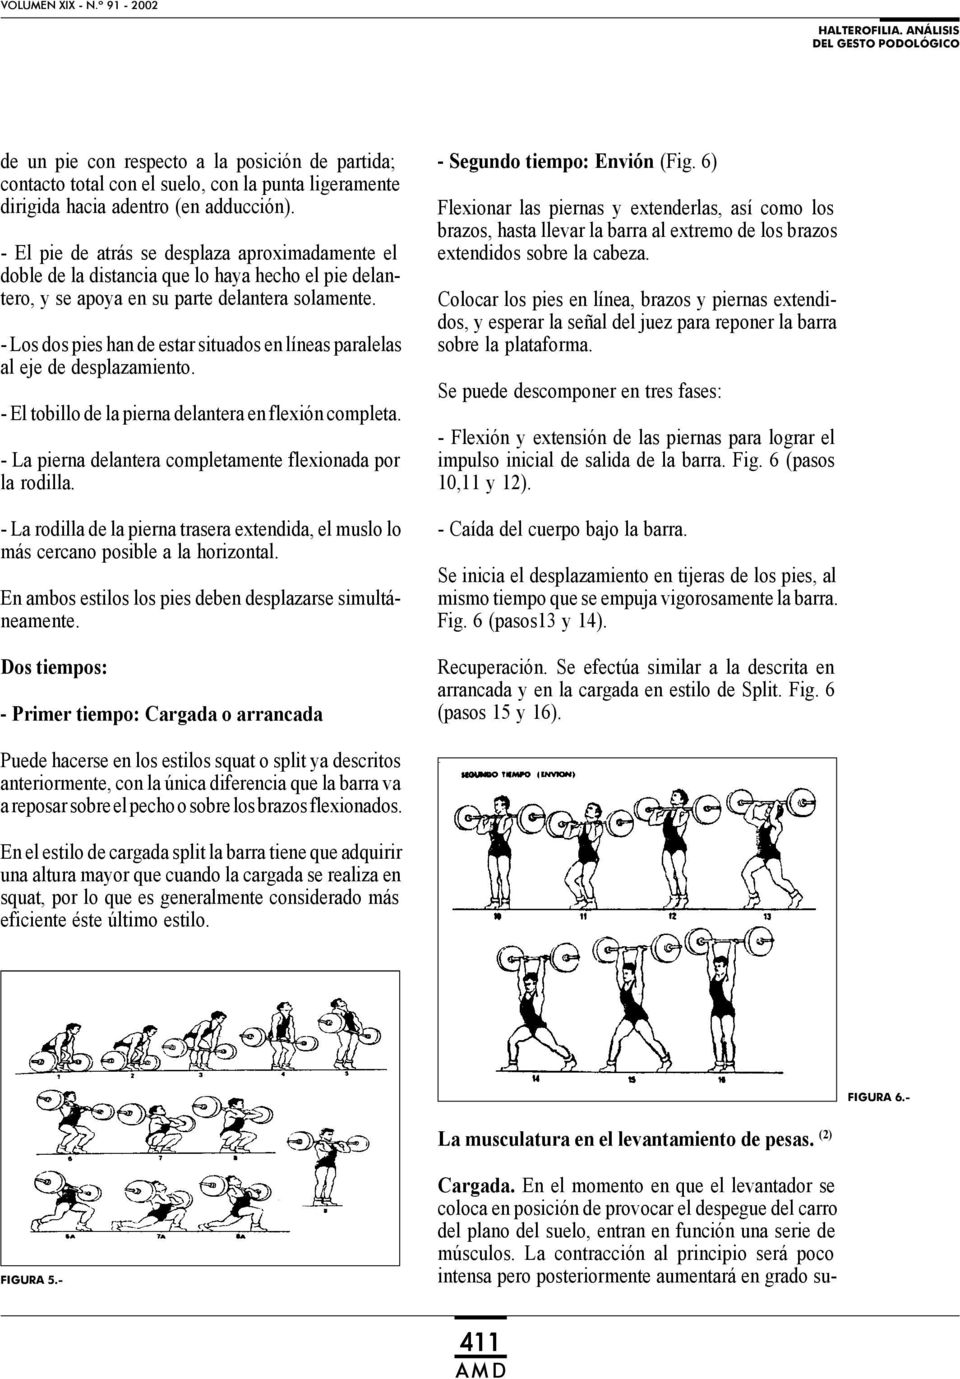 409 A M D WEIGHTLIFTING. ANALYSIS OF THE FOOT EXPRESSION 1. HISTORIA ...